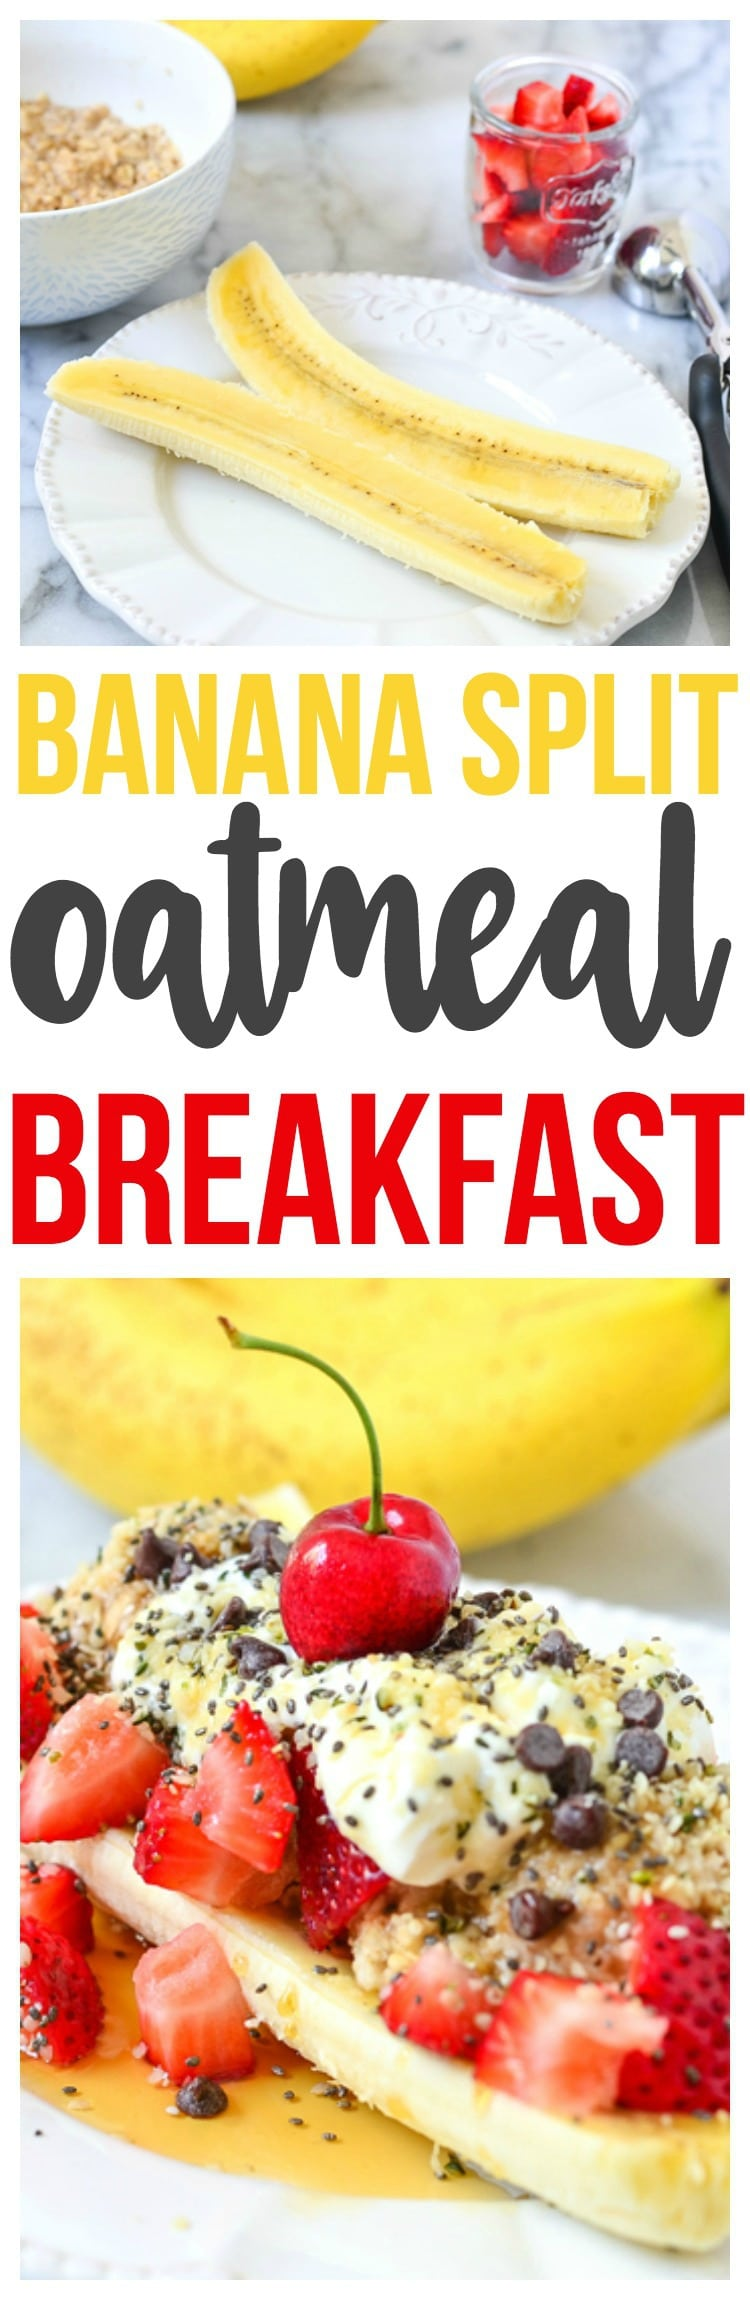 Healthy, delicious and nutritious Oatmeal Breakfast that is a fun breakfast recipe. Make our banana split oatmeal breakfast.